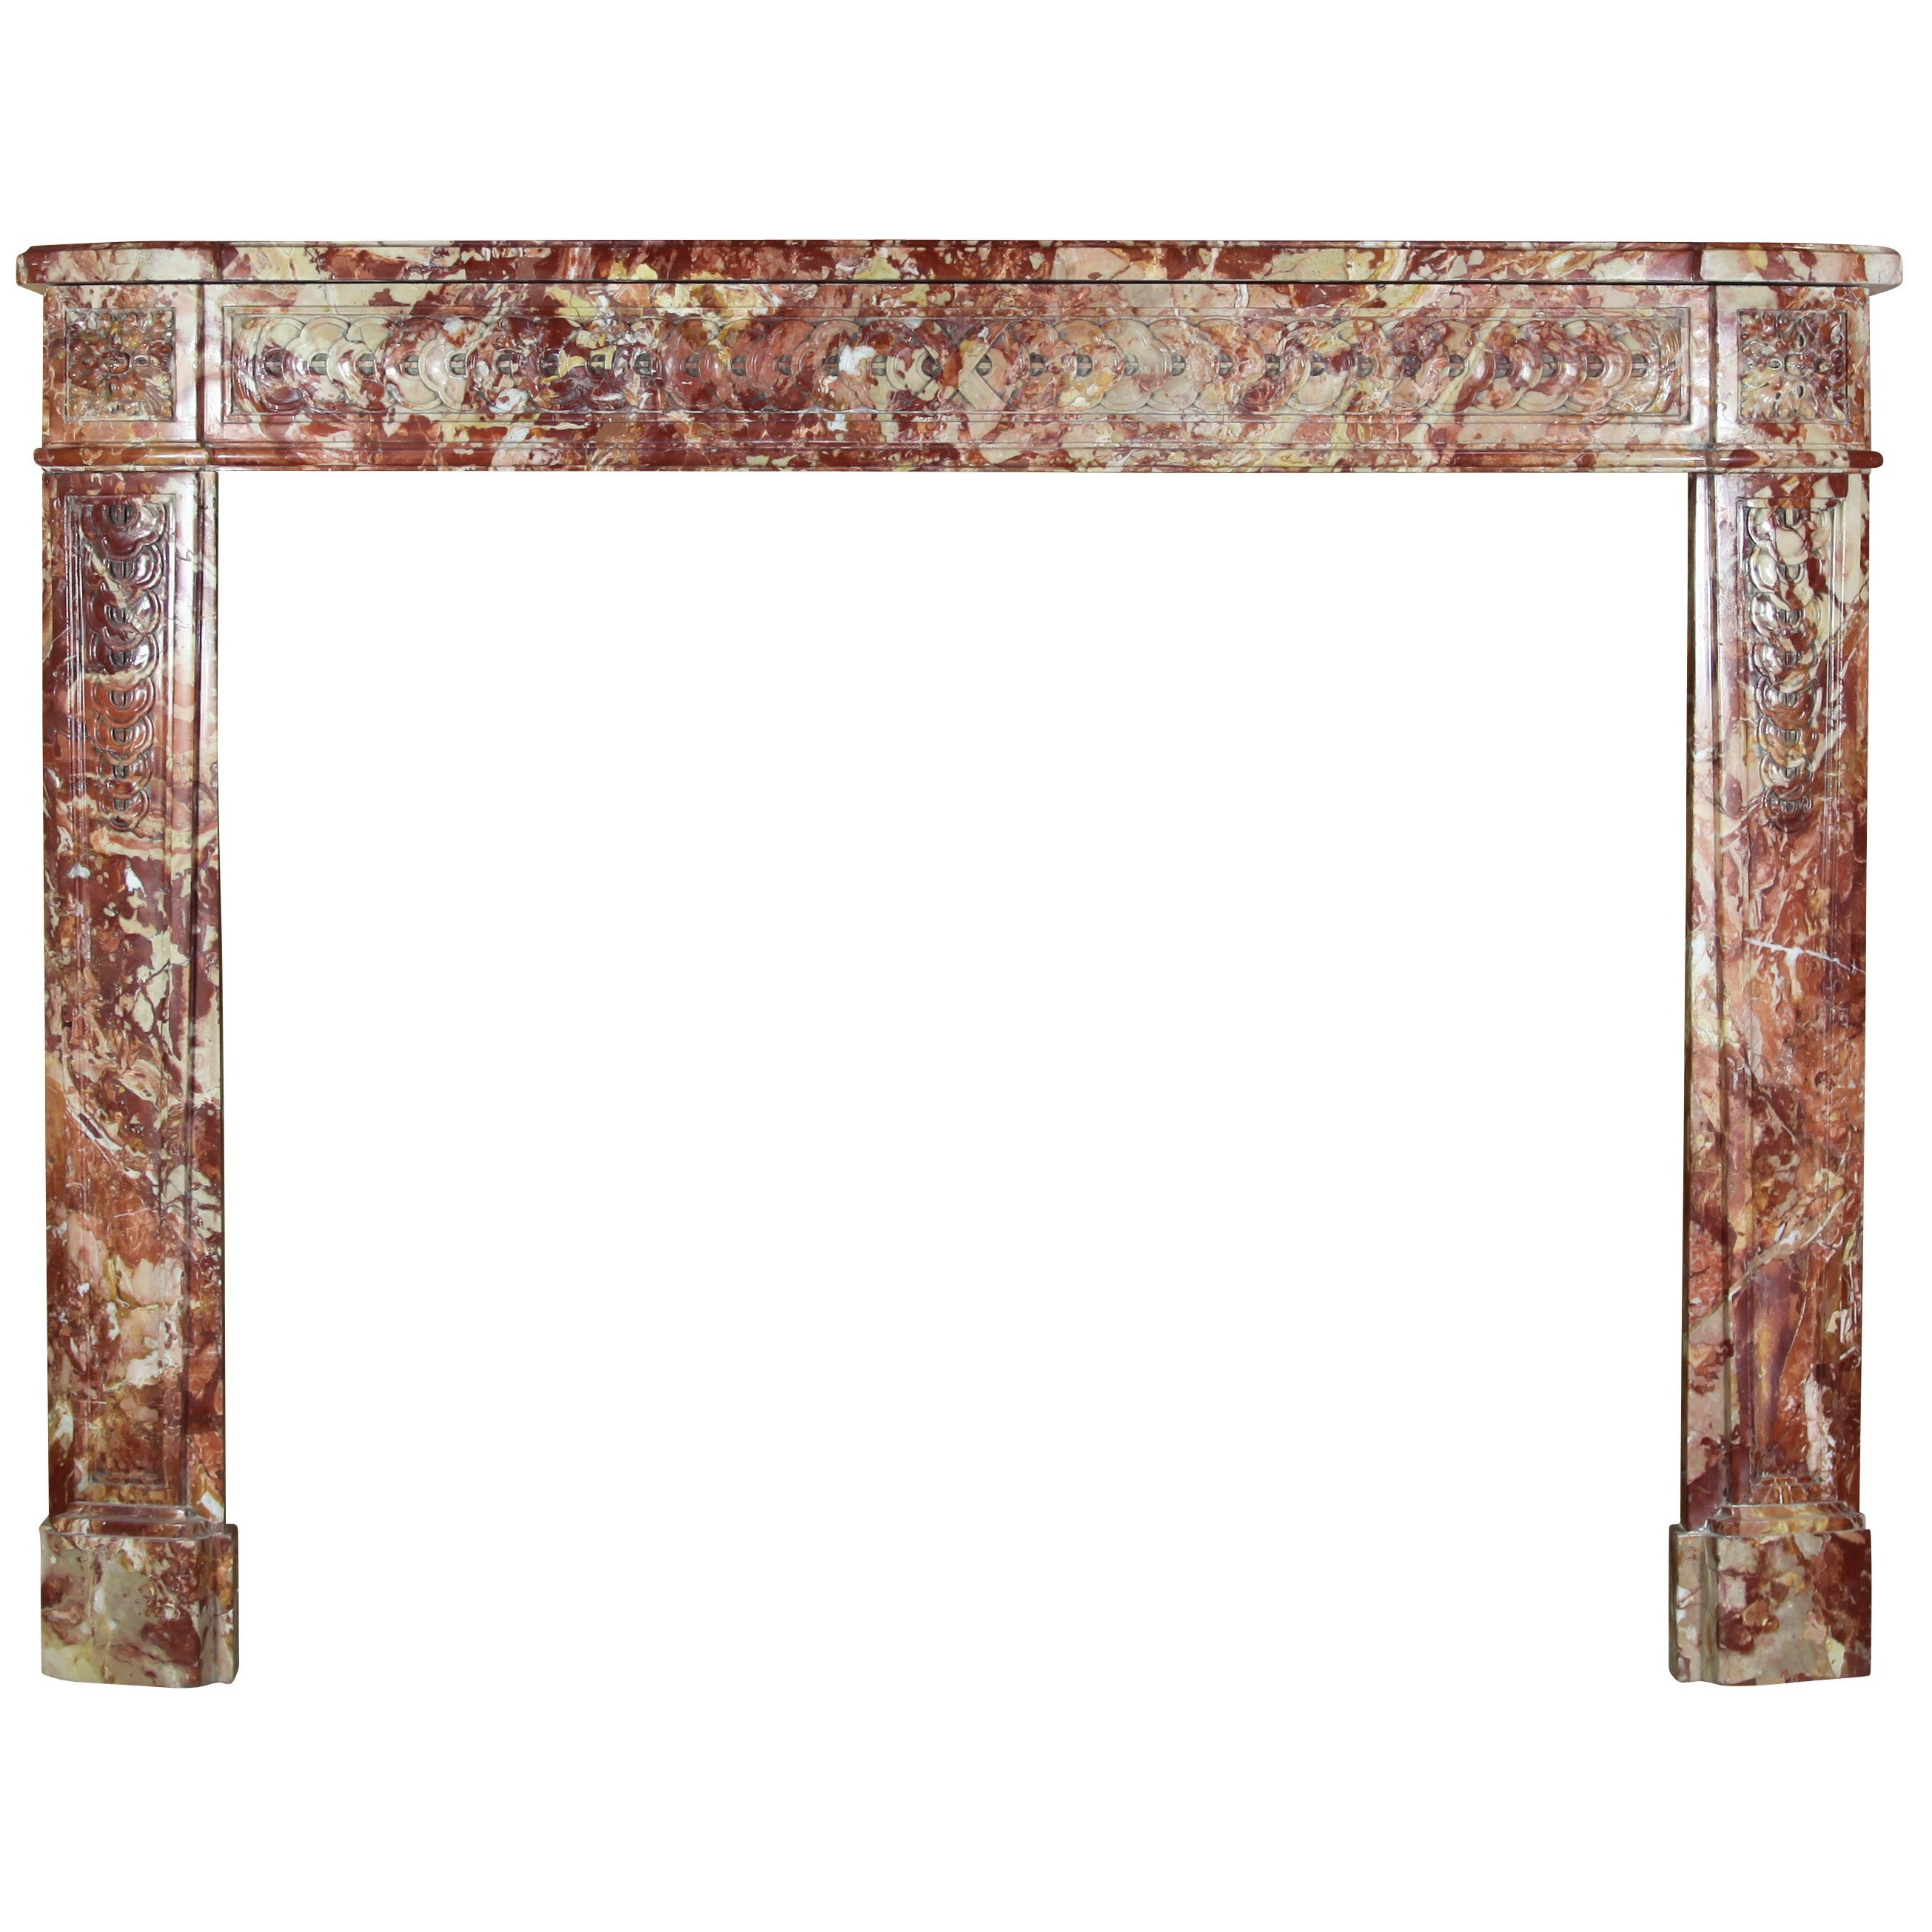 18th Century Fine French Antique Fireplace in Opulent Marble